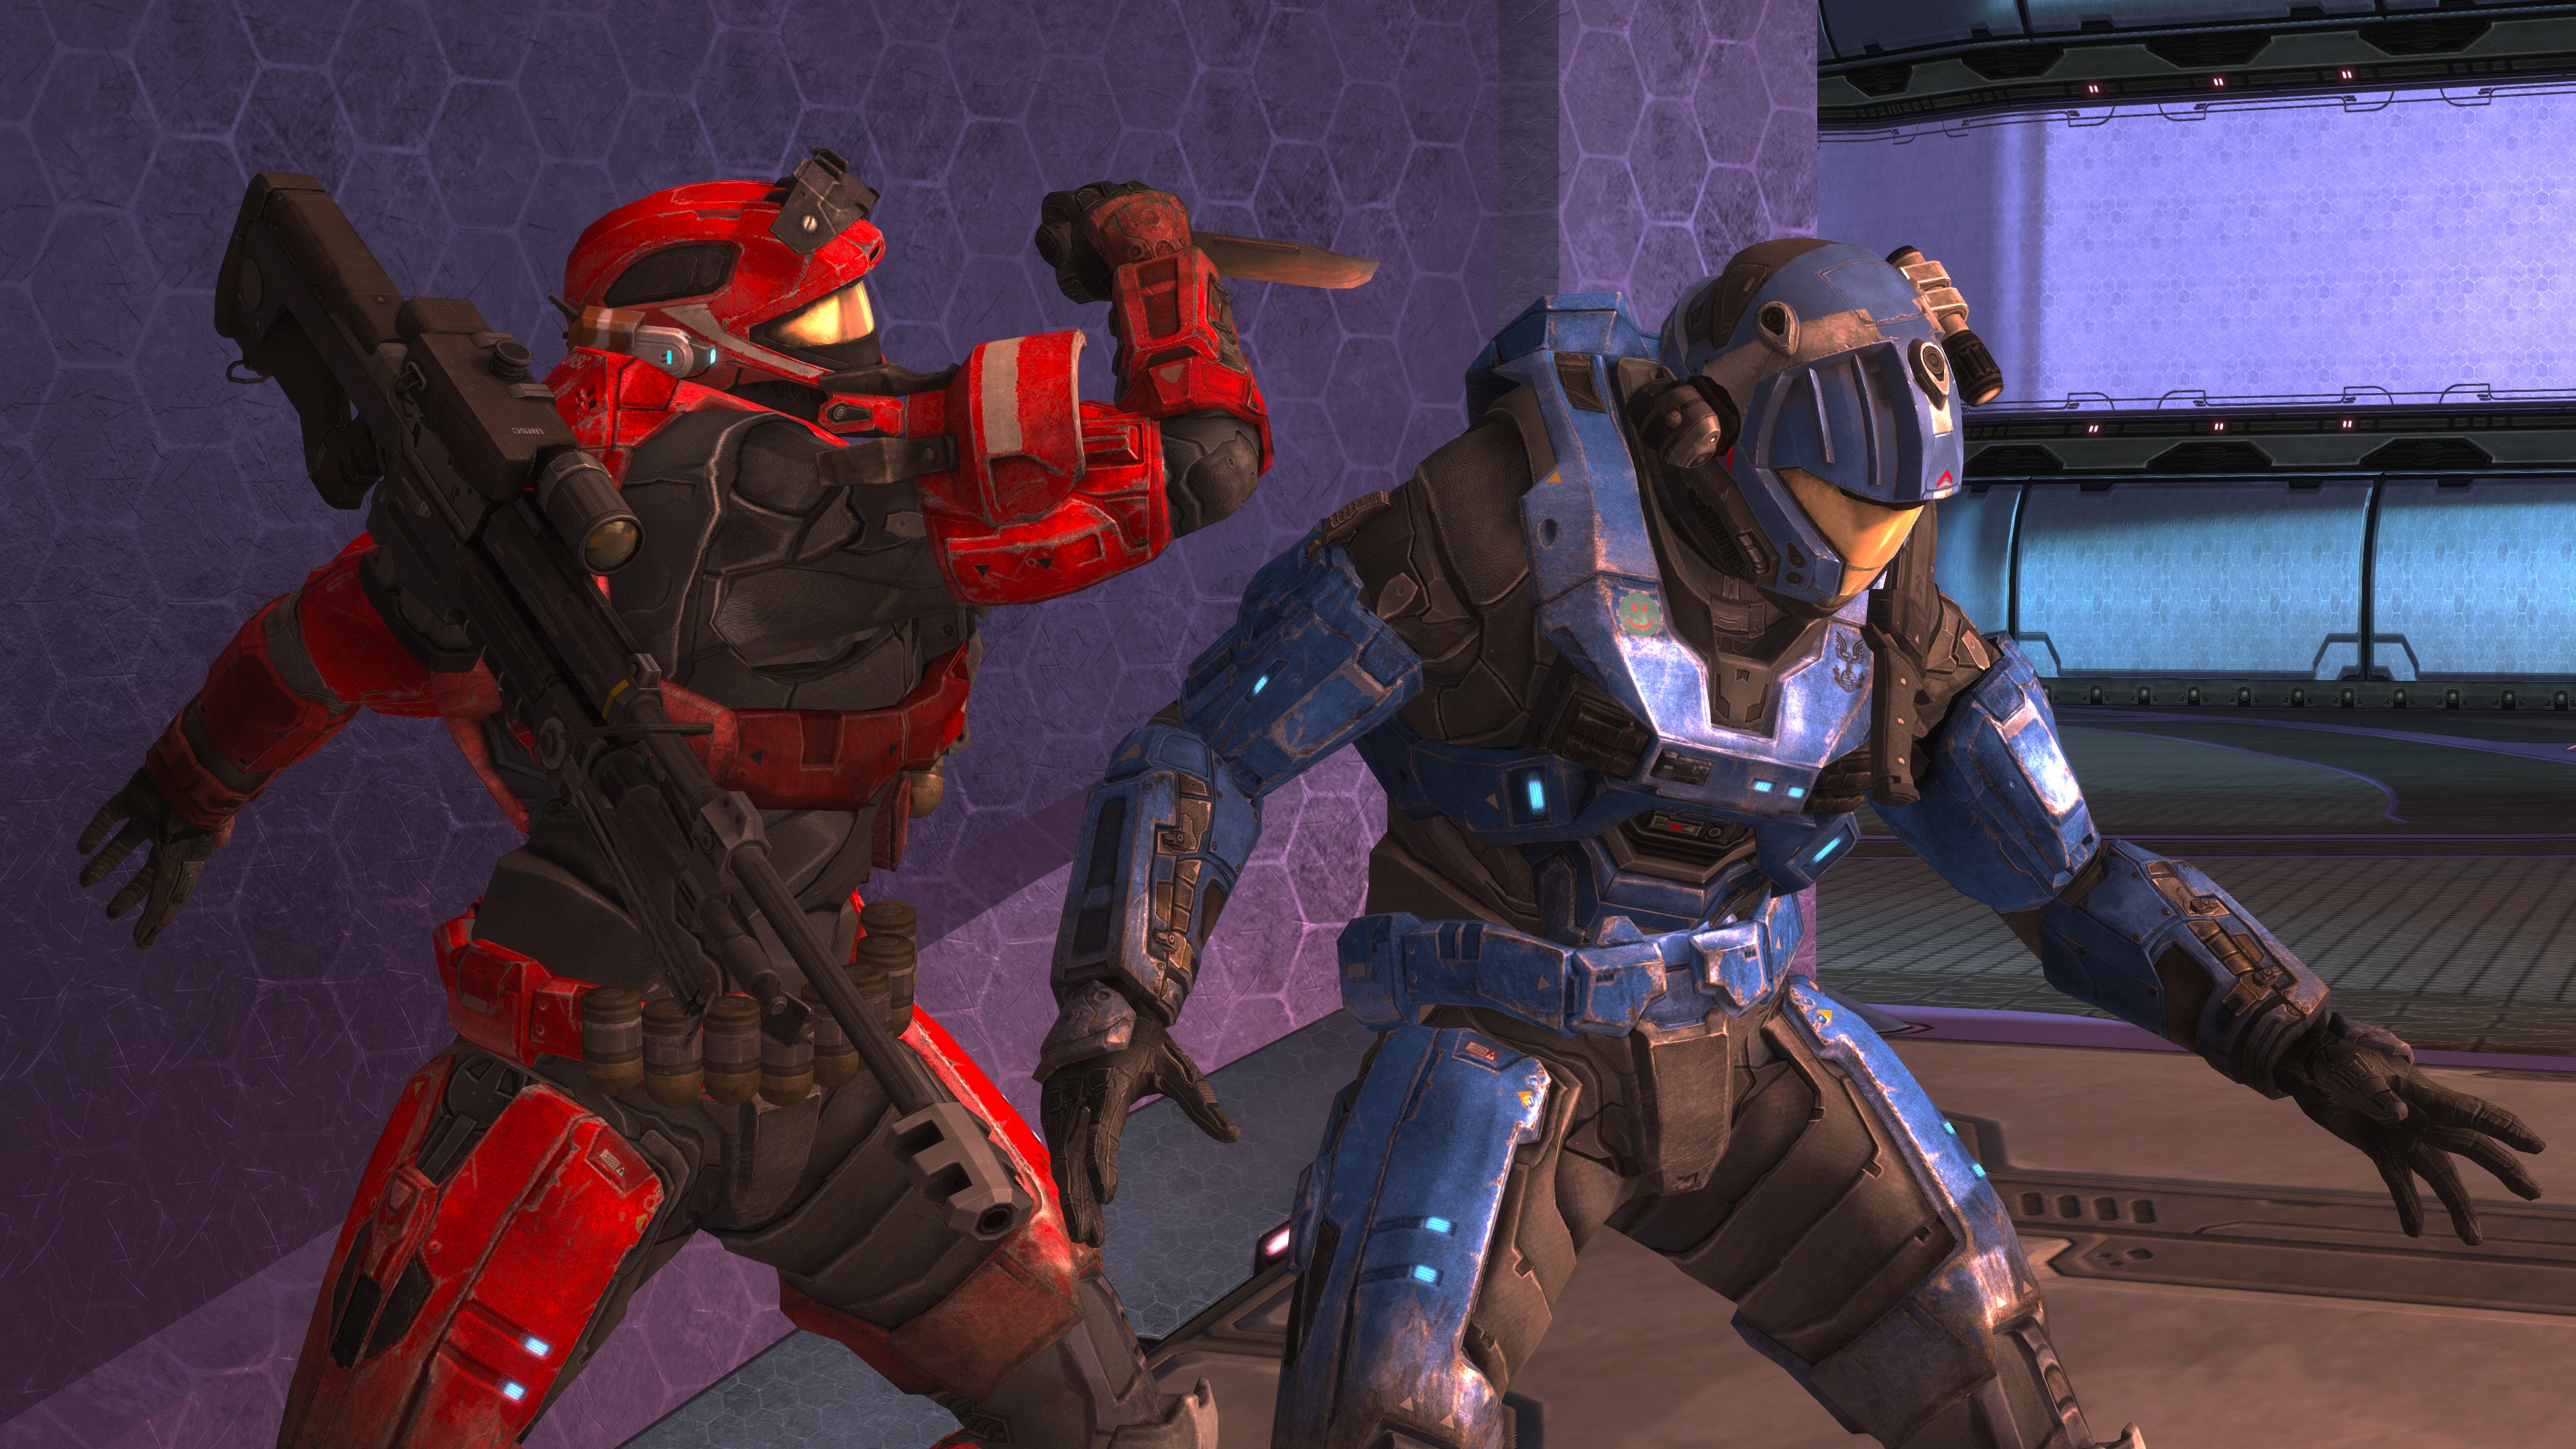 More Bans Are On The Way To Combat Idle Players Exploiting Halo: Reach